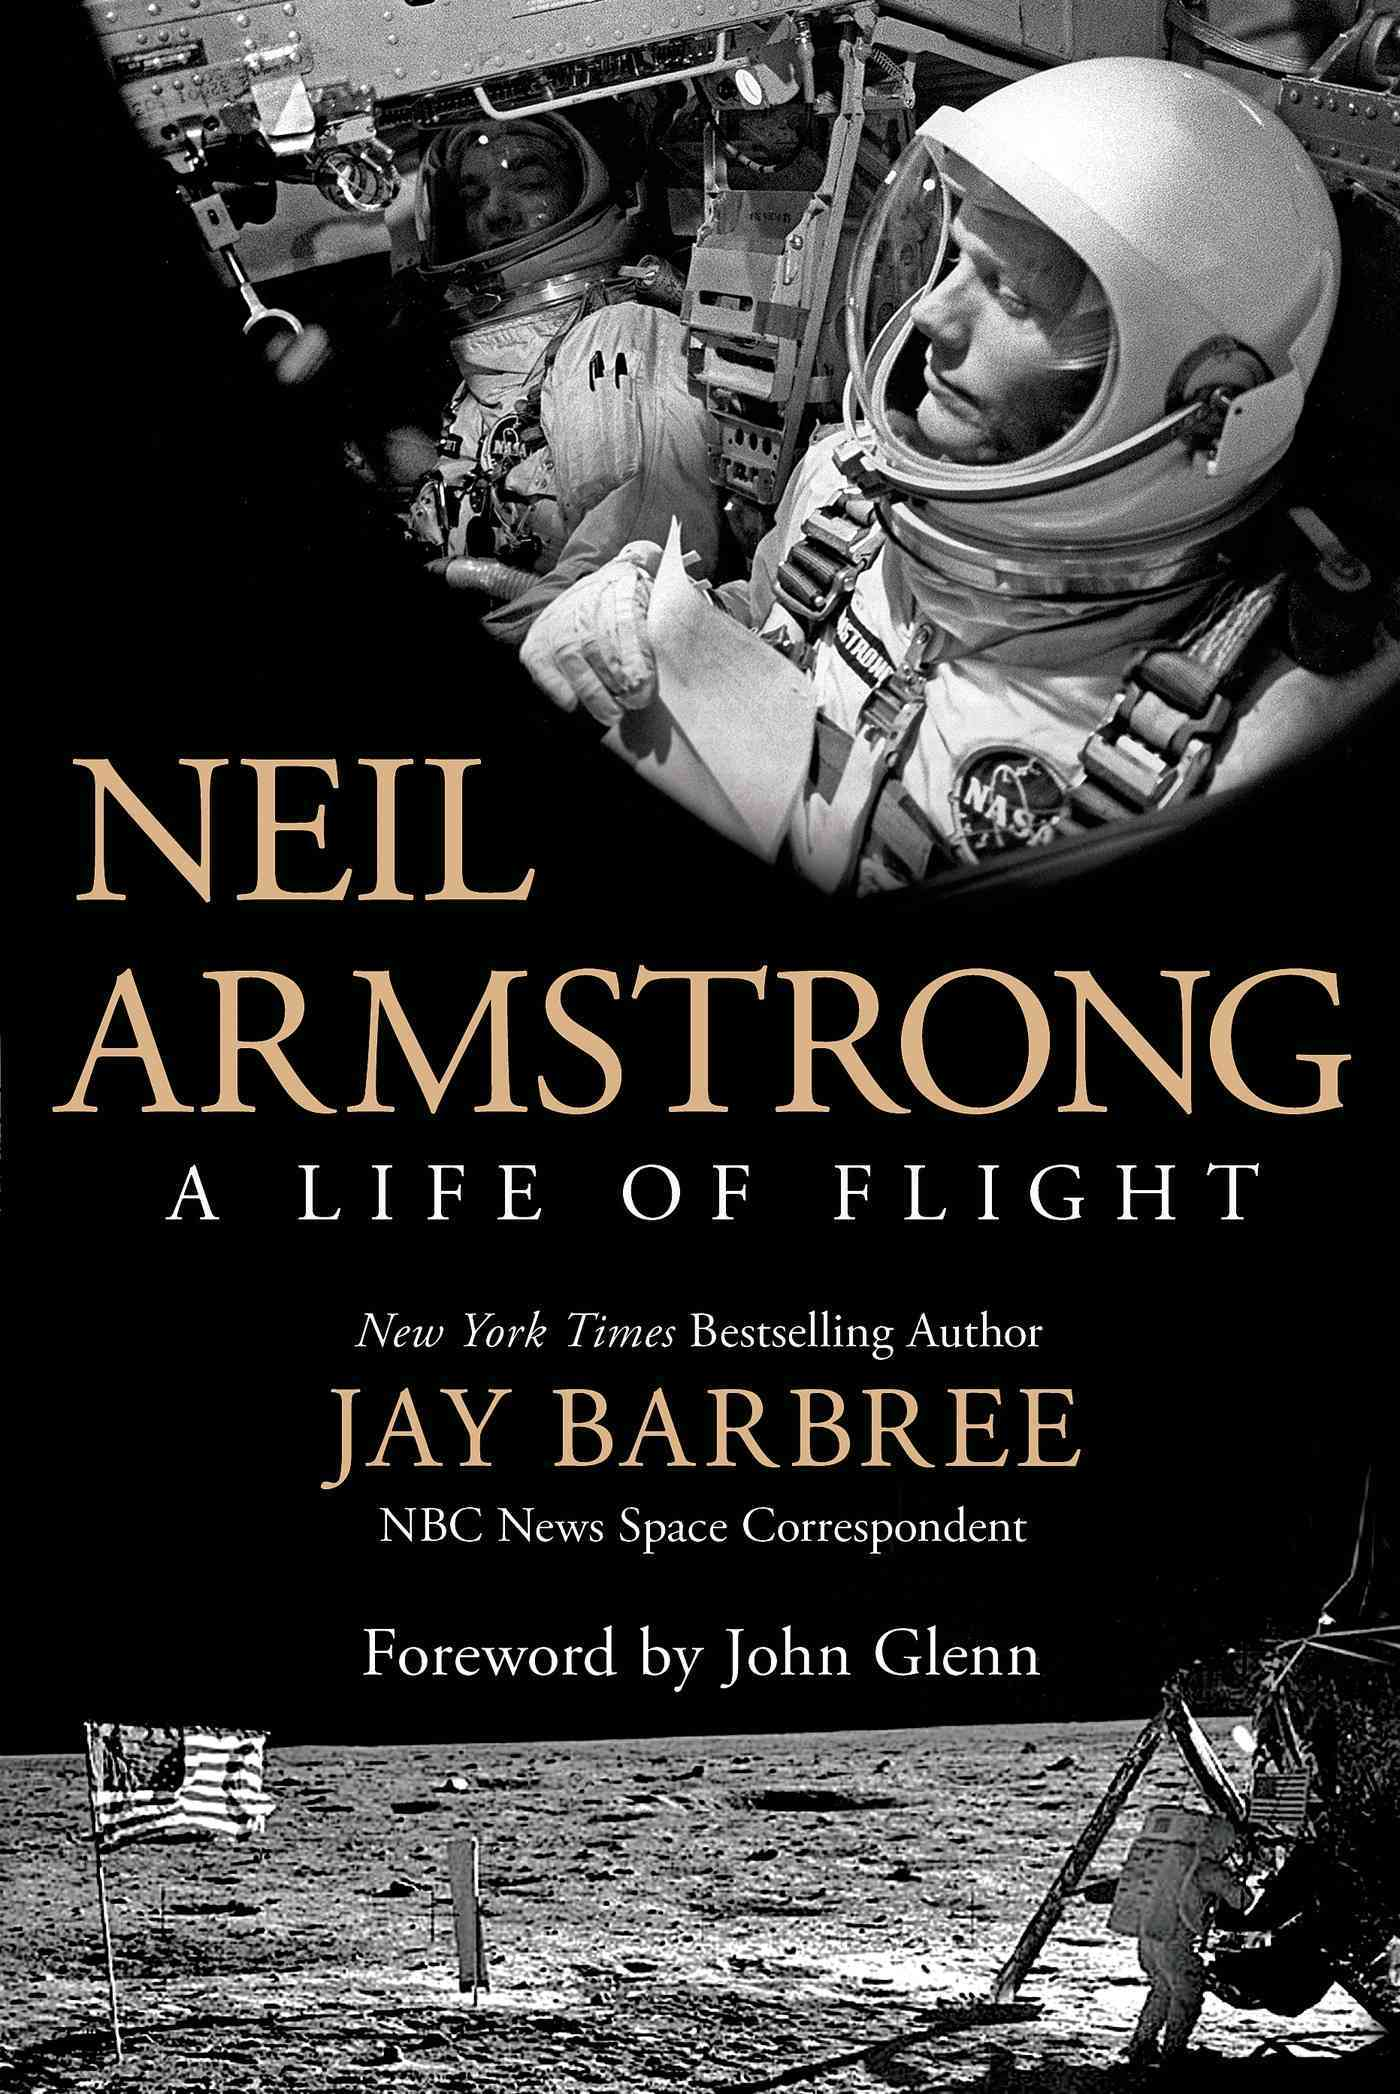 Neil Armstrong: A Life of Flight (Hardcover)